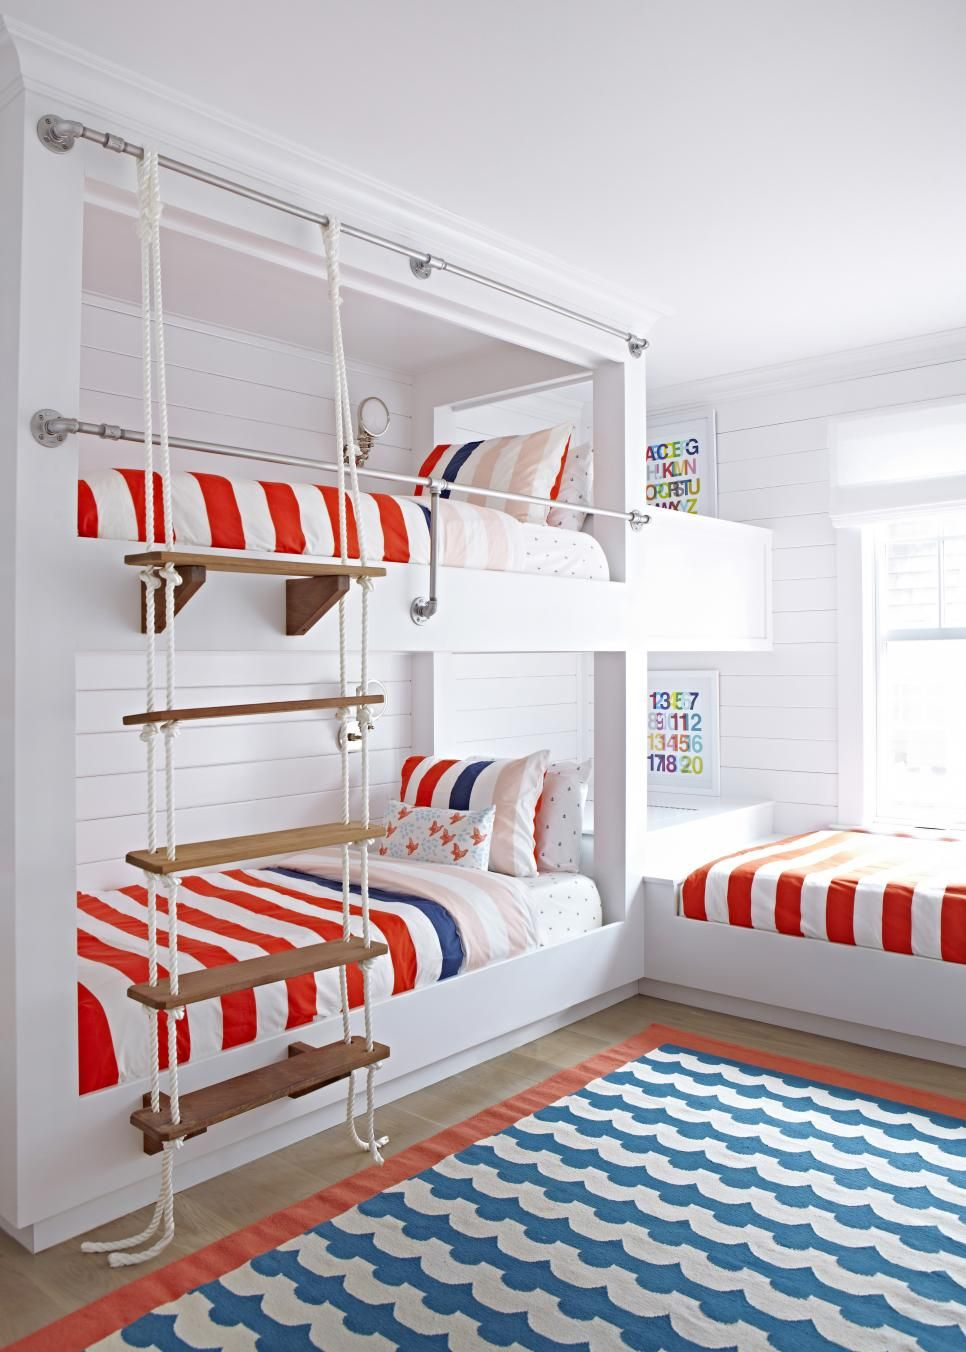 Chambre à Coucher Newport White Coastal Bungalow With Shiplap Walls And Nautical Theme